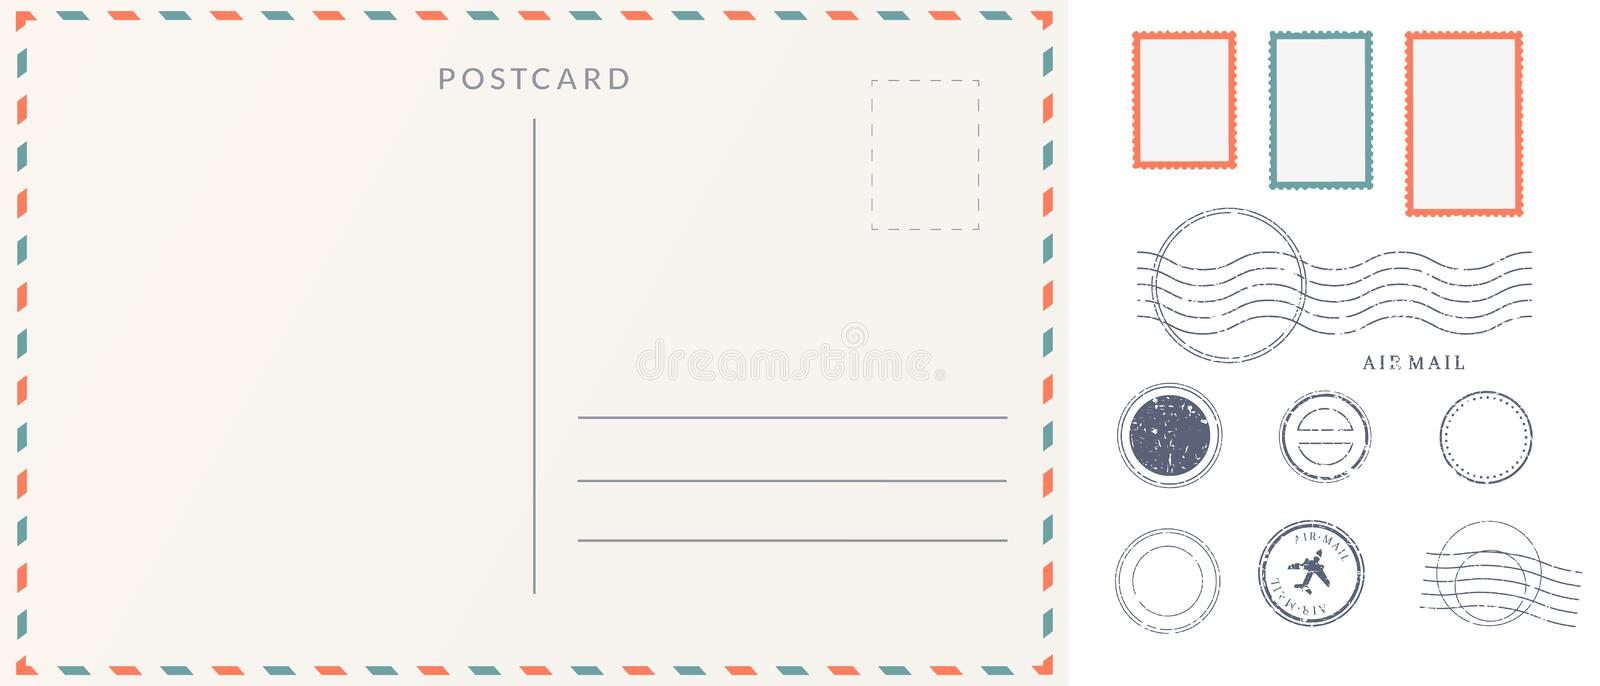 Elements for empty postcard back. royalty free illustration